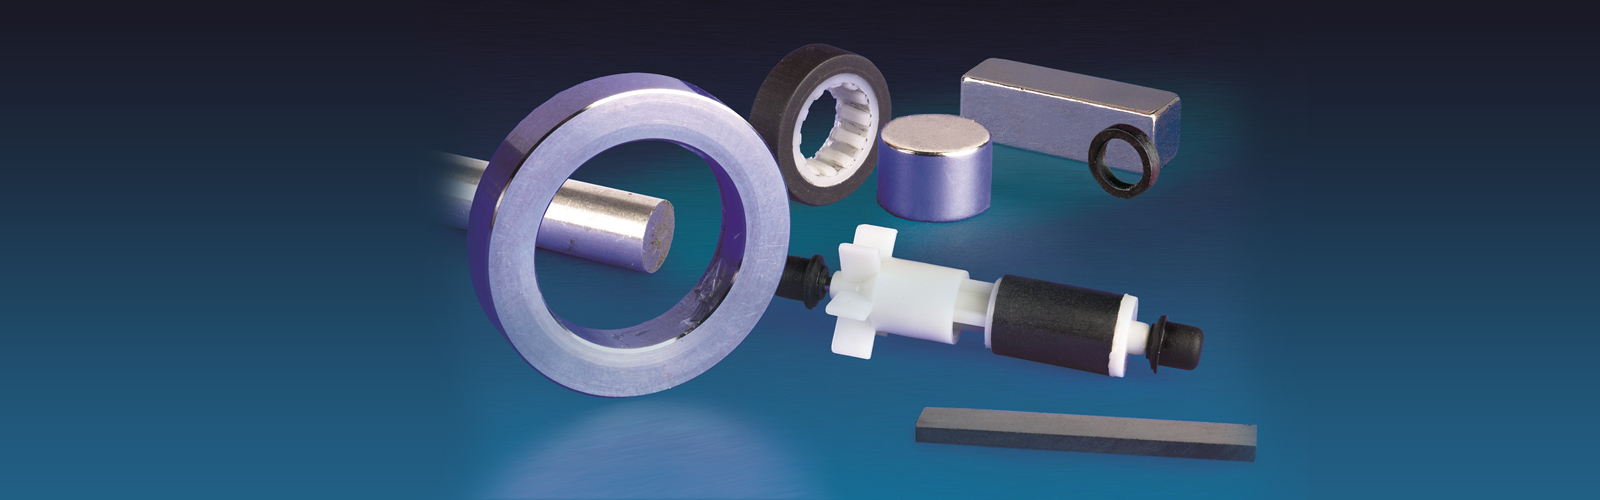 Reed Switch Developments Magnetic Reed Switches and Actuators